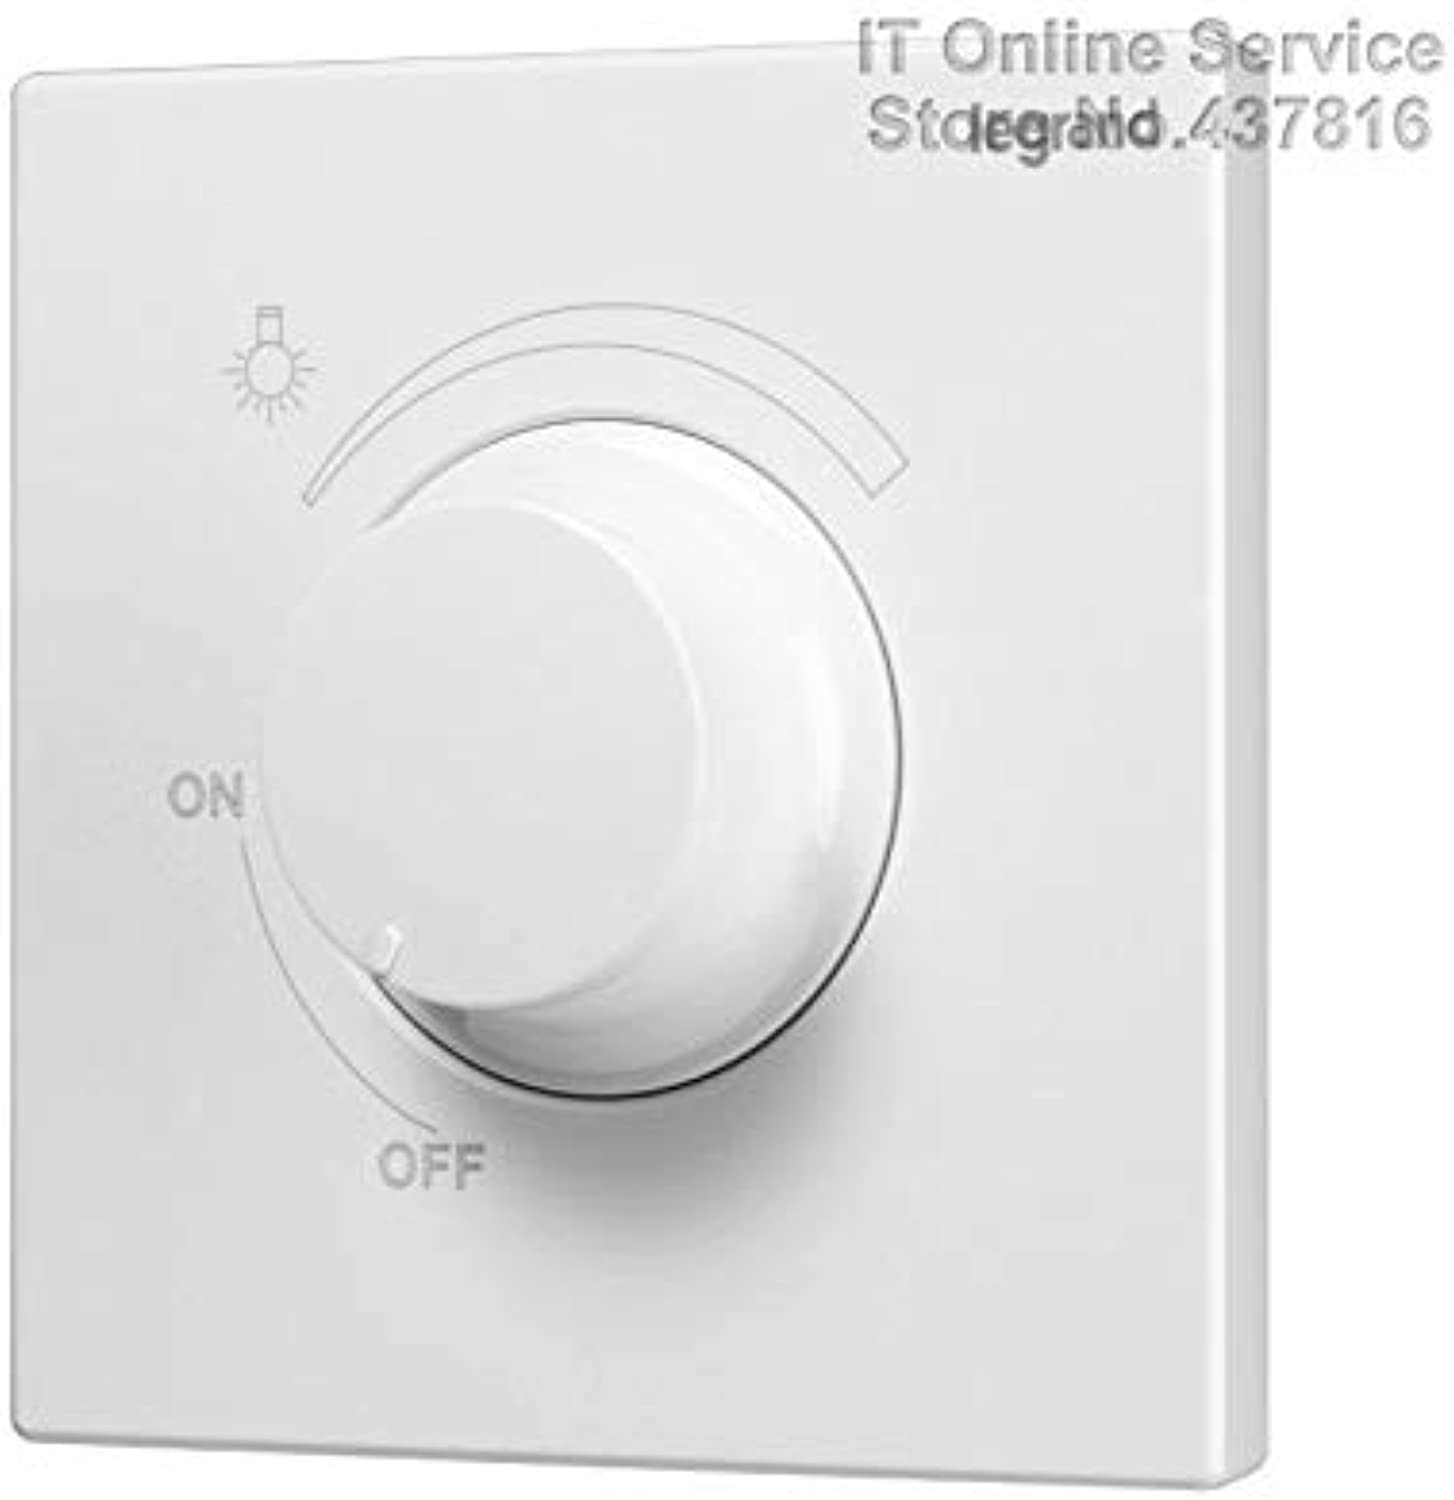 High Quality LED Lights Dimmer Switch 500W 220V Brightness Adjustment and Controller Knob Switch